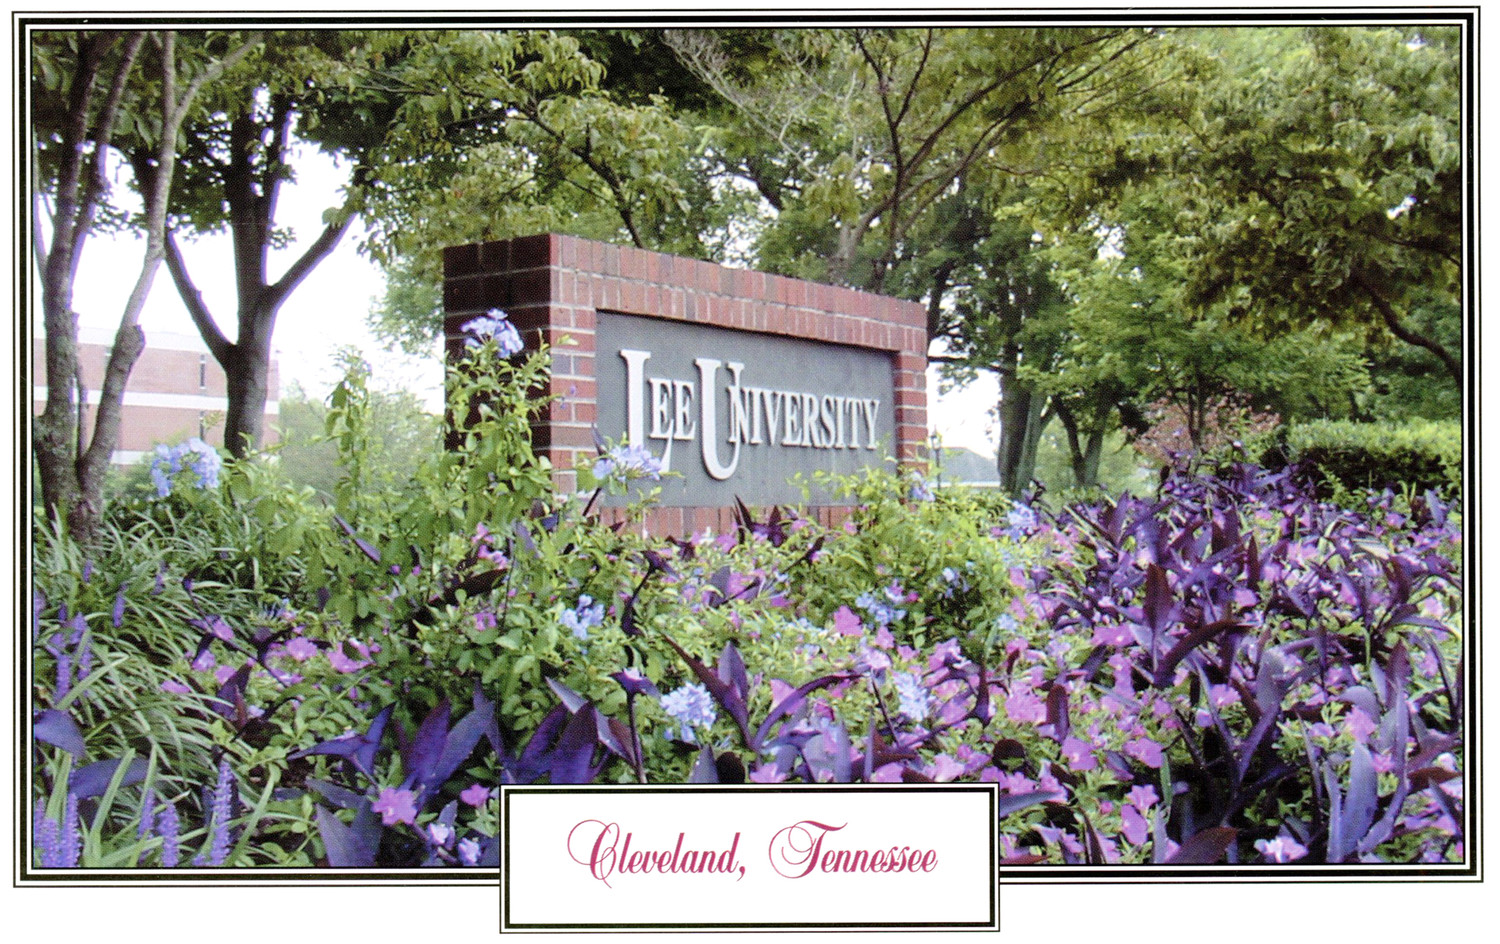 THIS PHOTO shows the signage of Lee University surrounded by flowers.